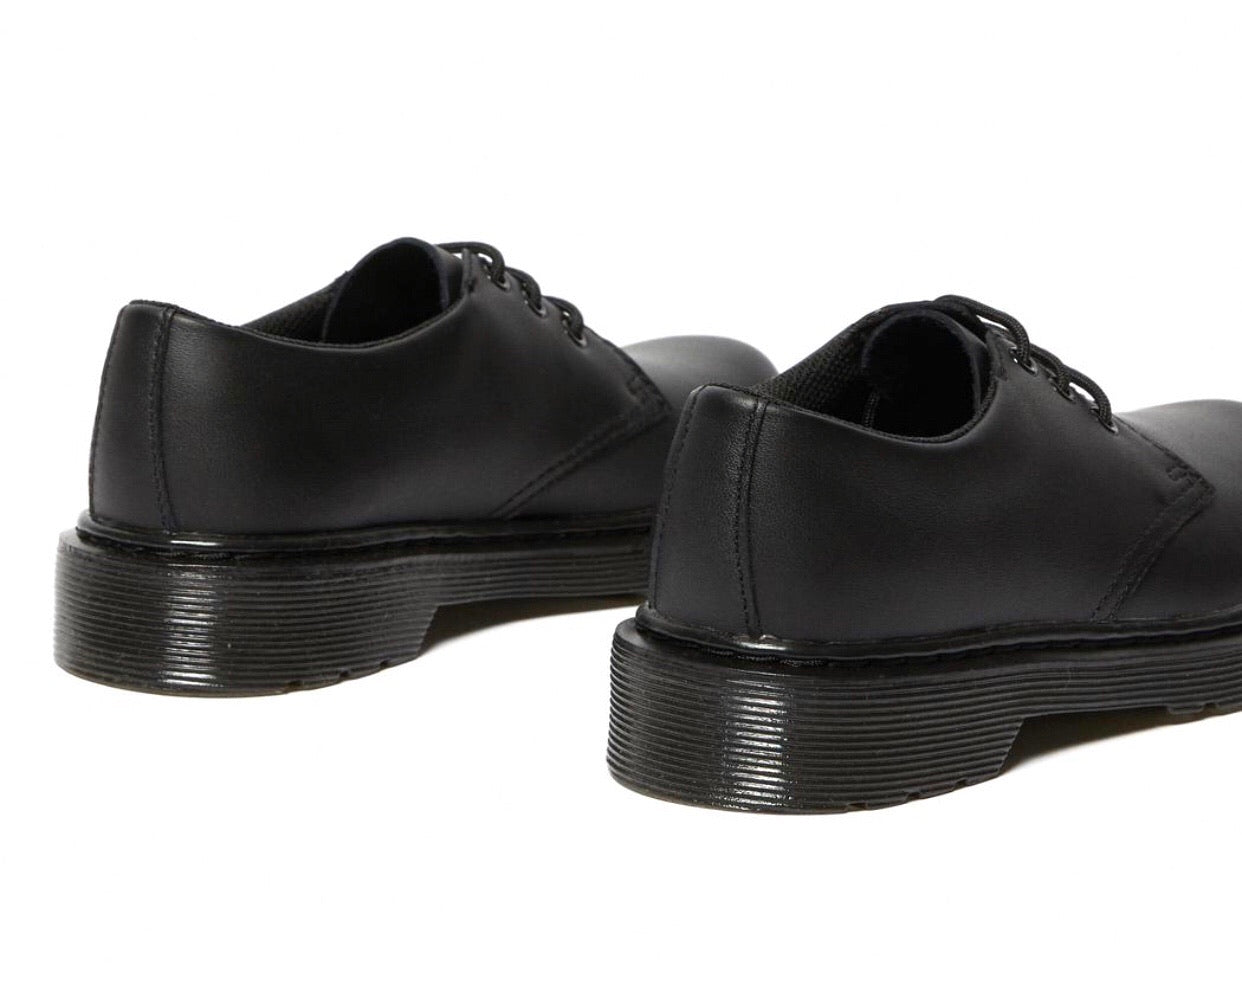 Dr. Martens 1461 Black Mono Junior 3 Eyelet Shoe